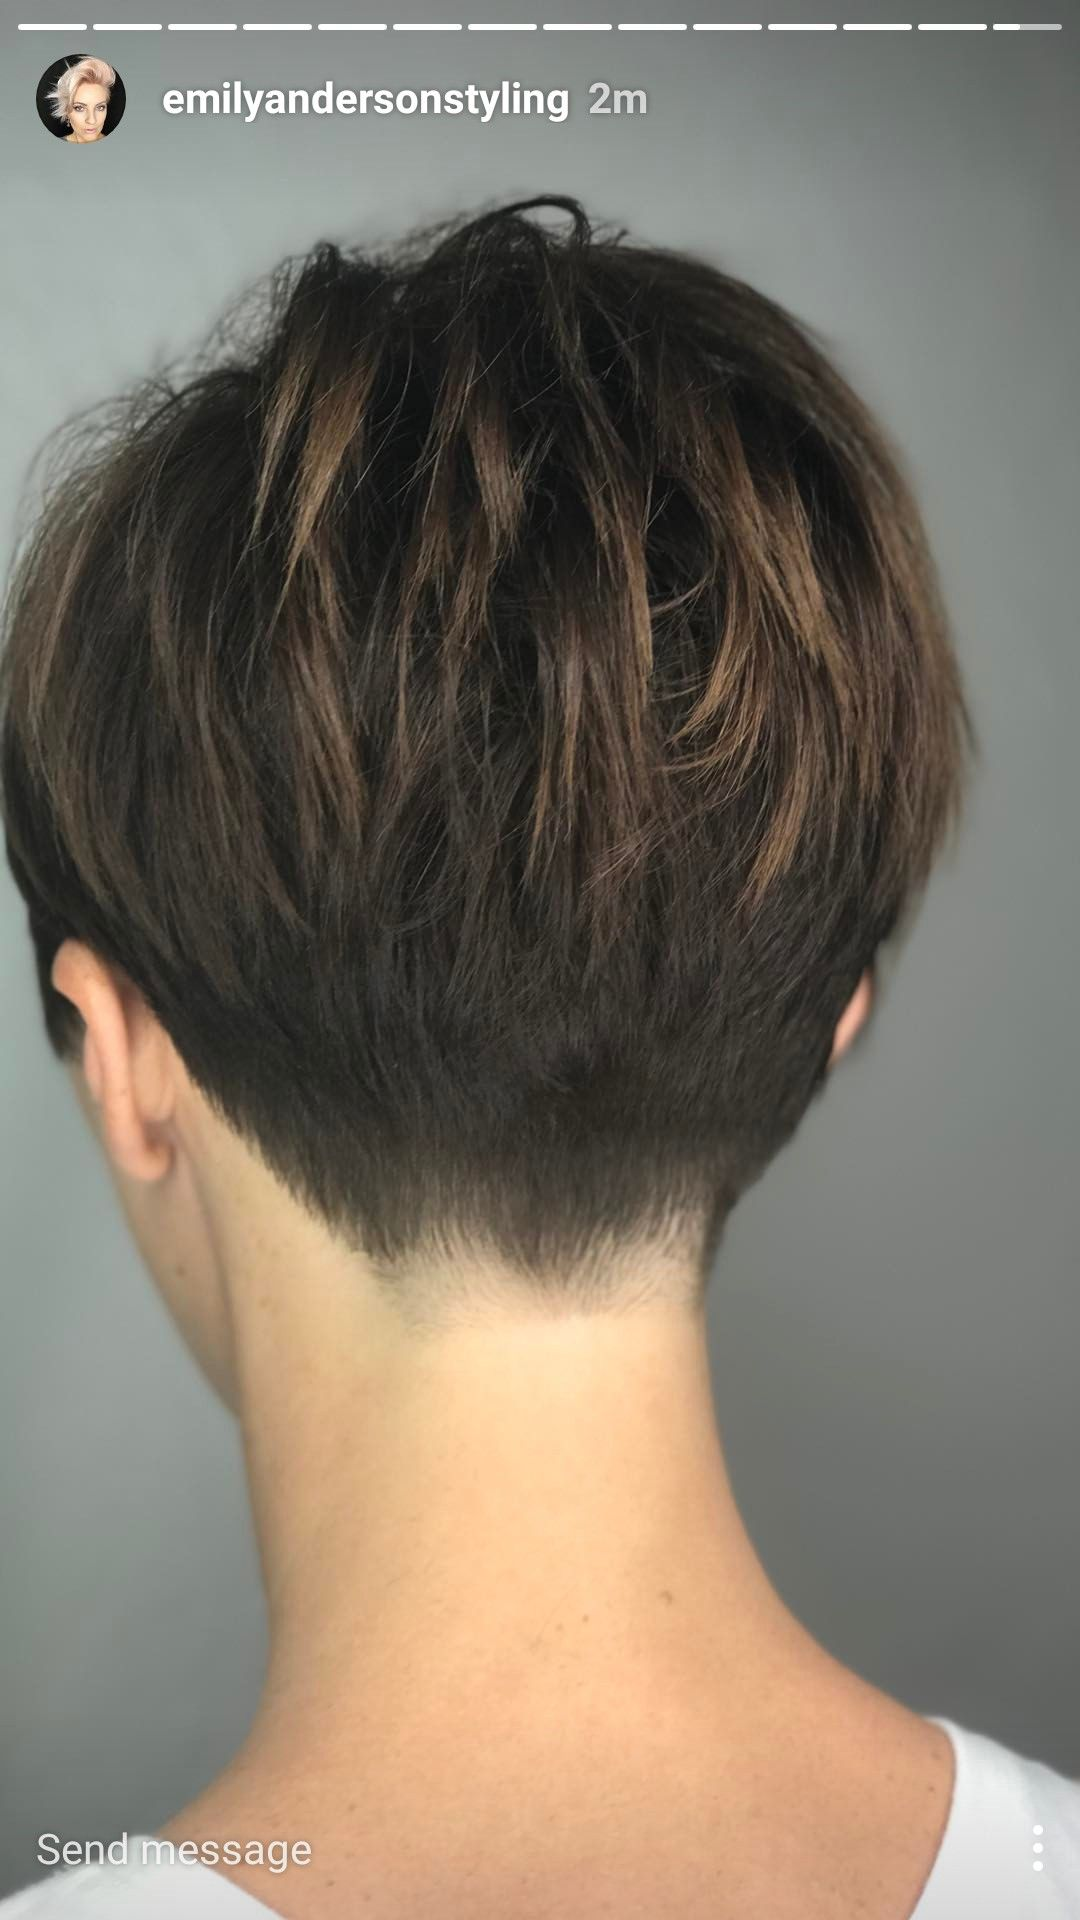 Short Hair From Behind Short Hair Back Haircut For Thick Hair Thick Hair Styles